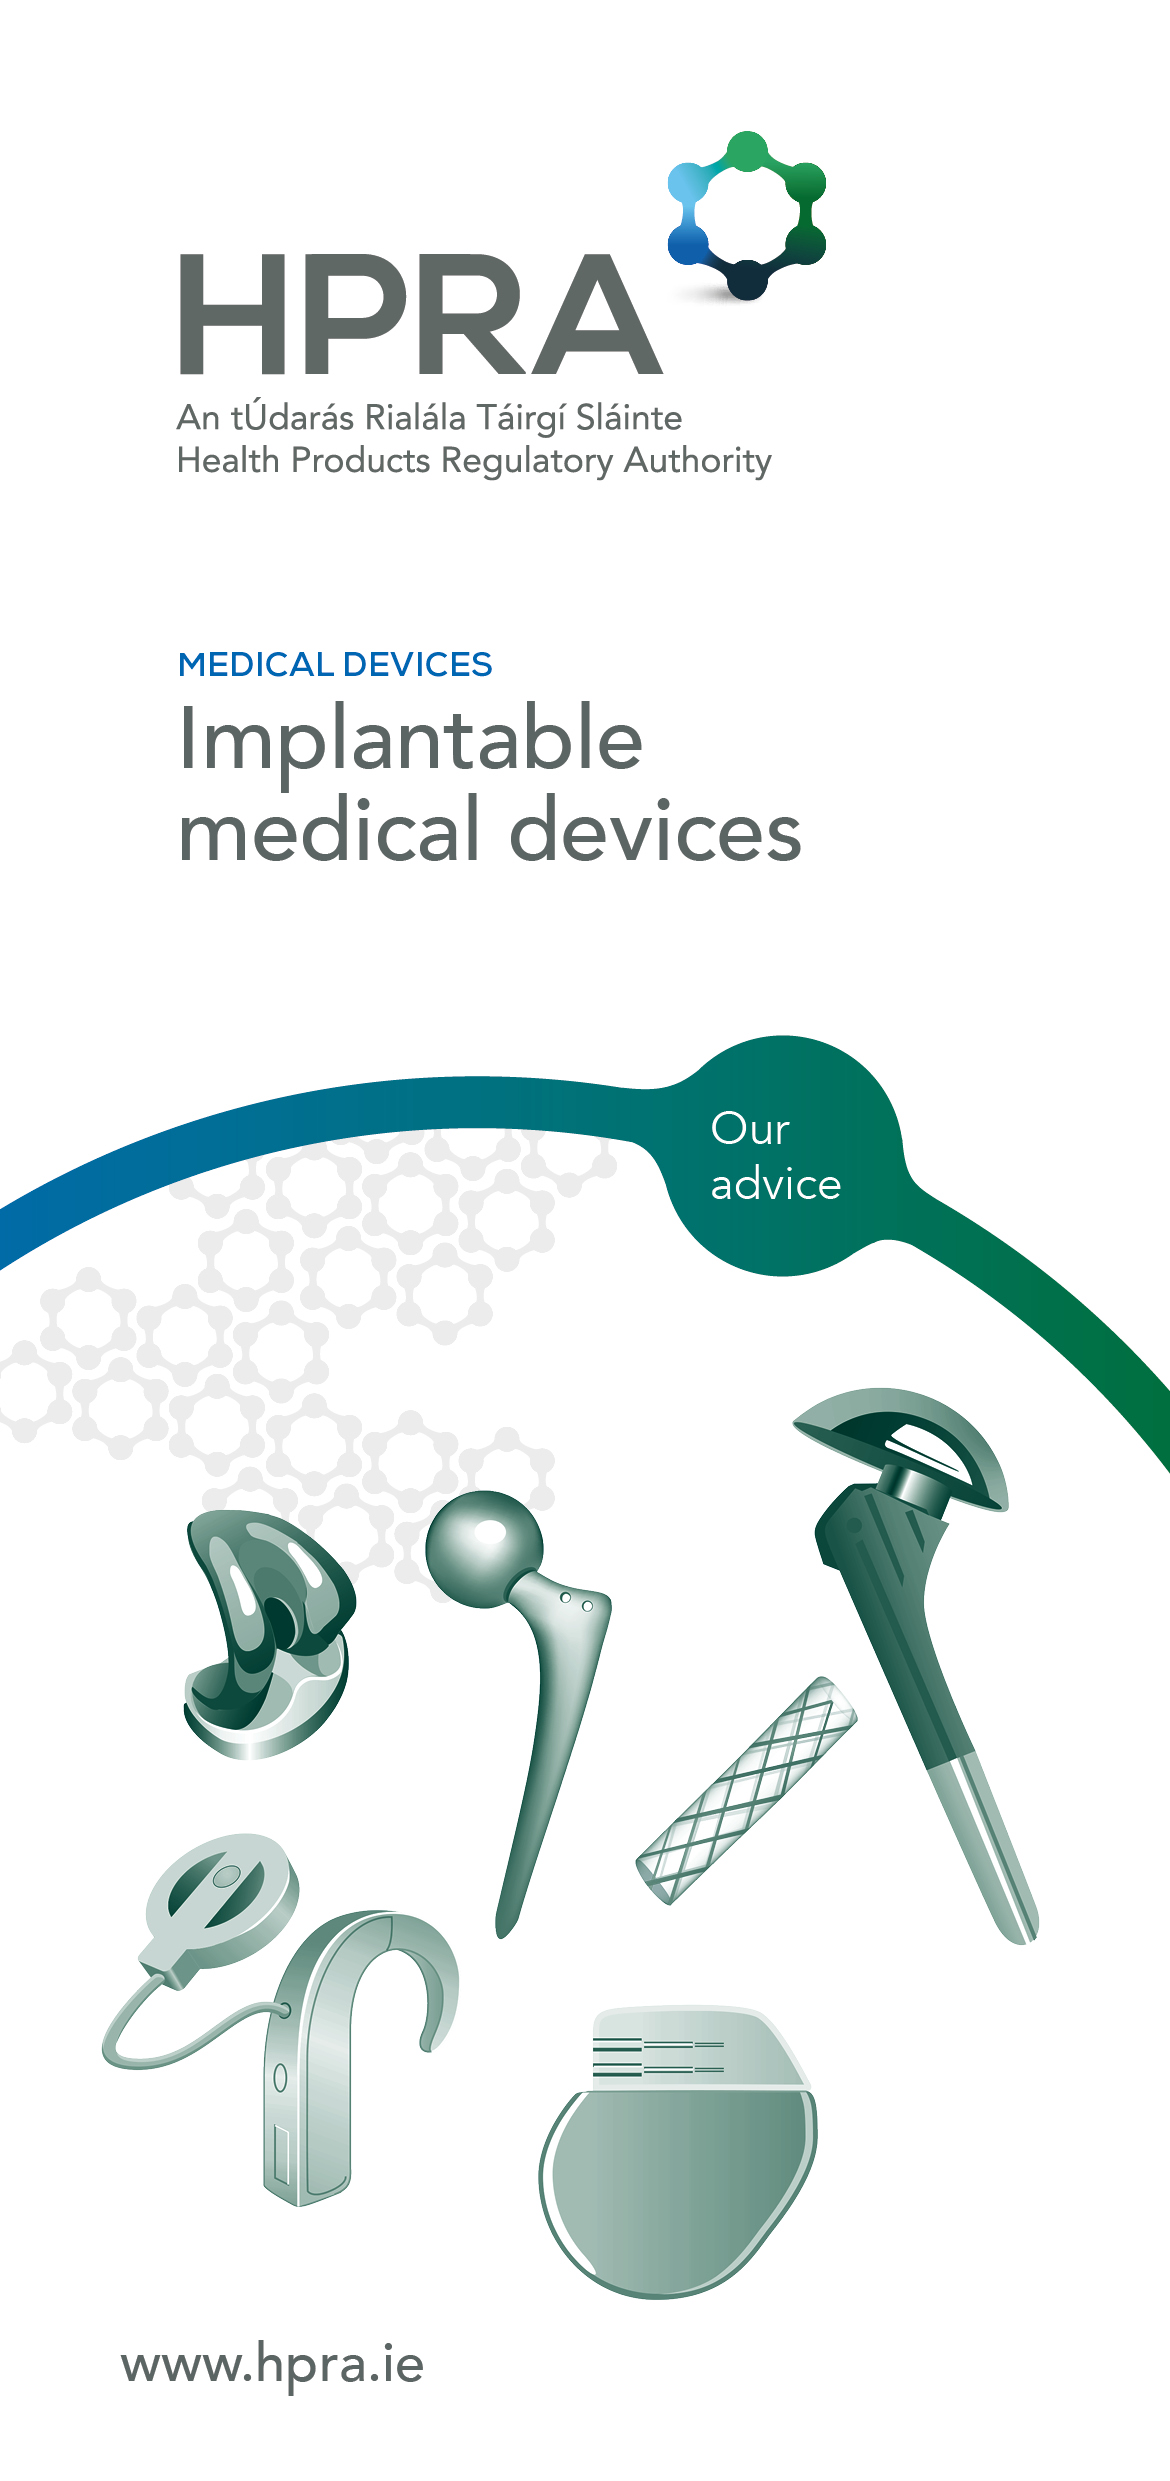 HPRA_Implantable medical devices_Cover